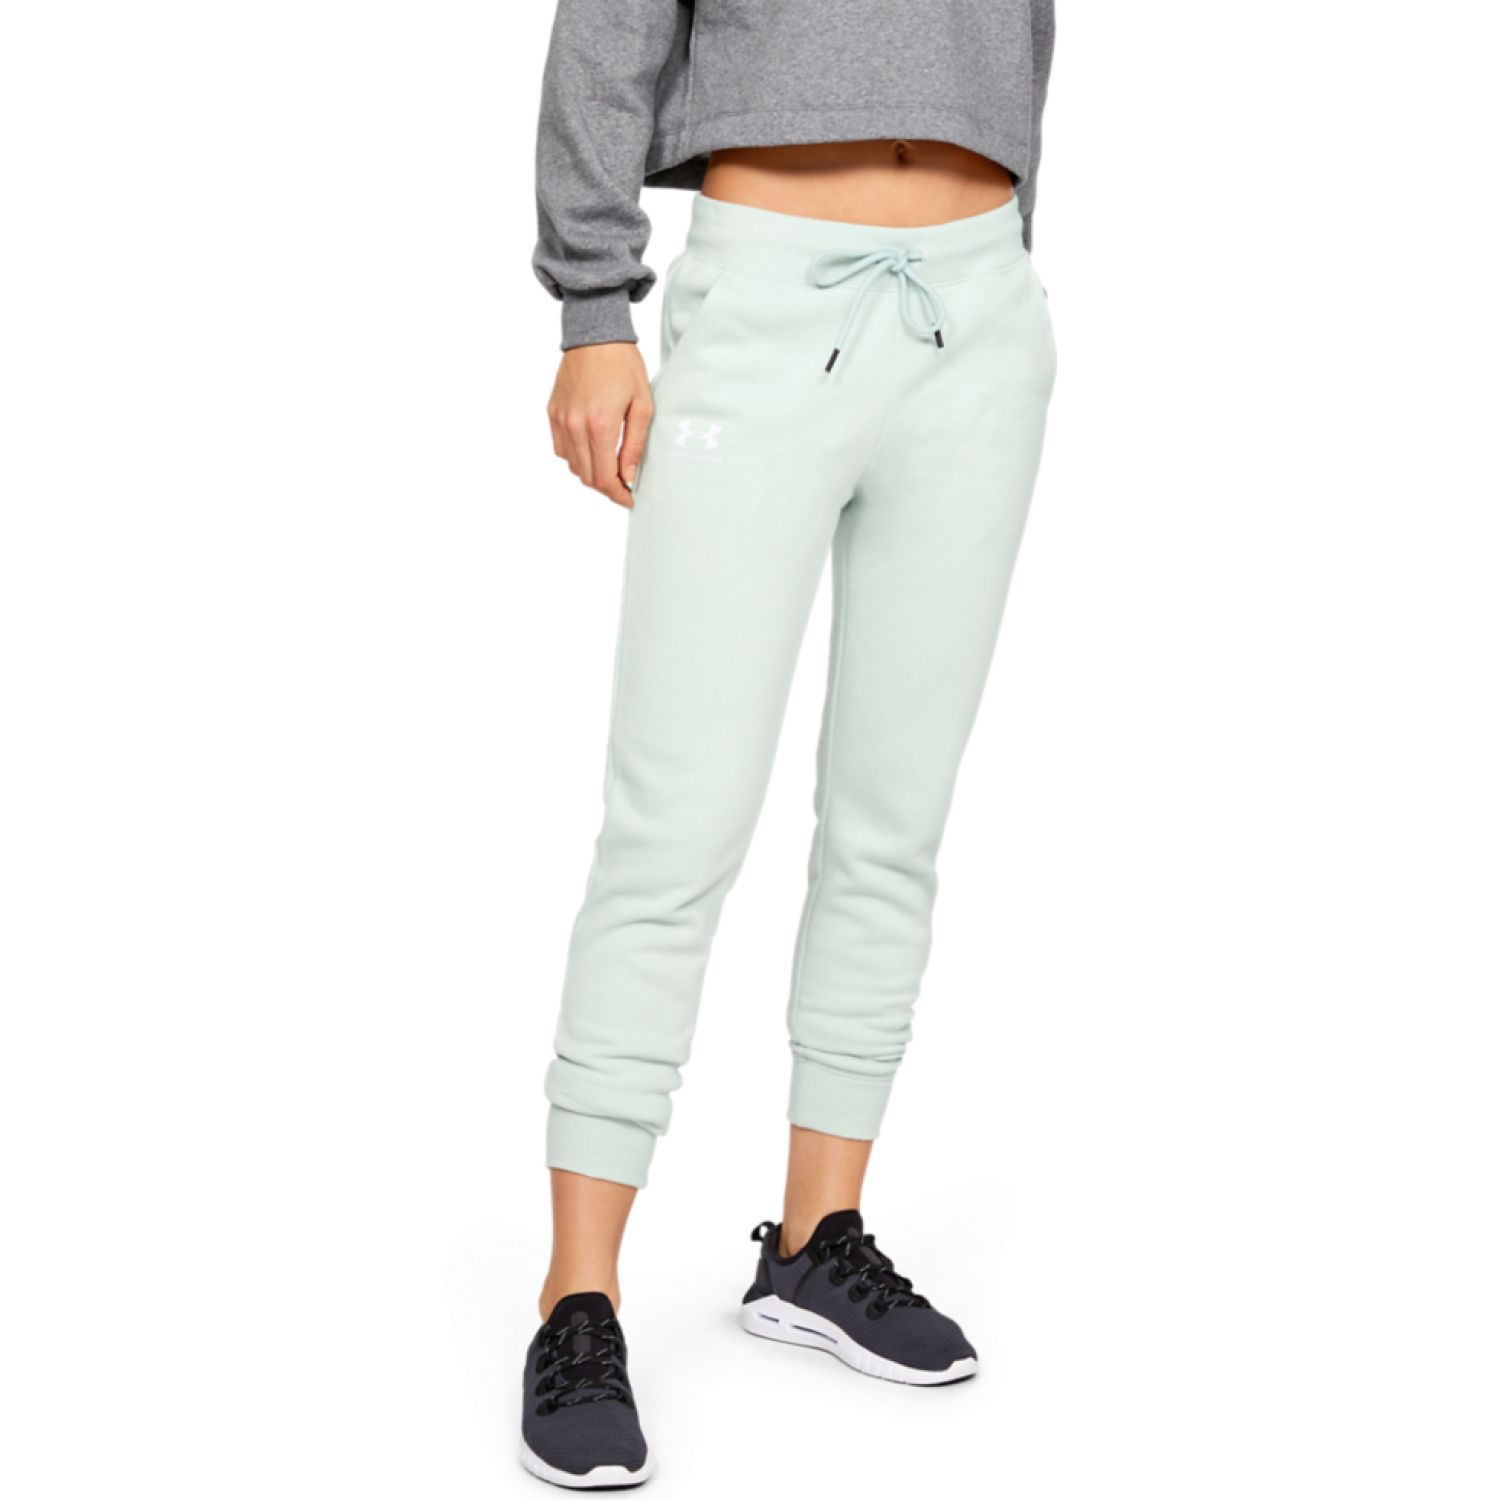 Under Armour RIVAL FLEECE SPORTSTYLE GRAPHIC PANT Acero Pantalones deportivos